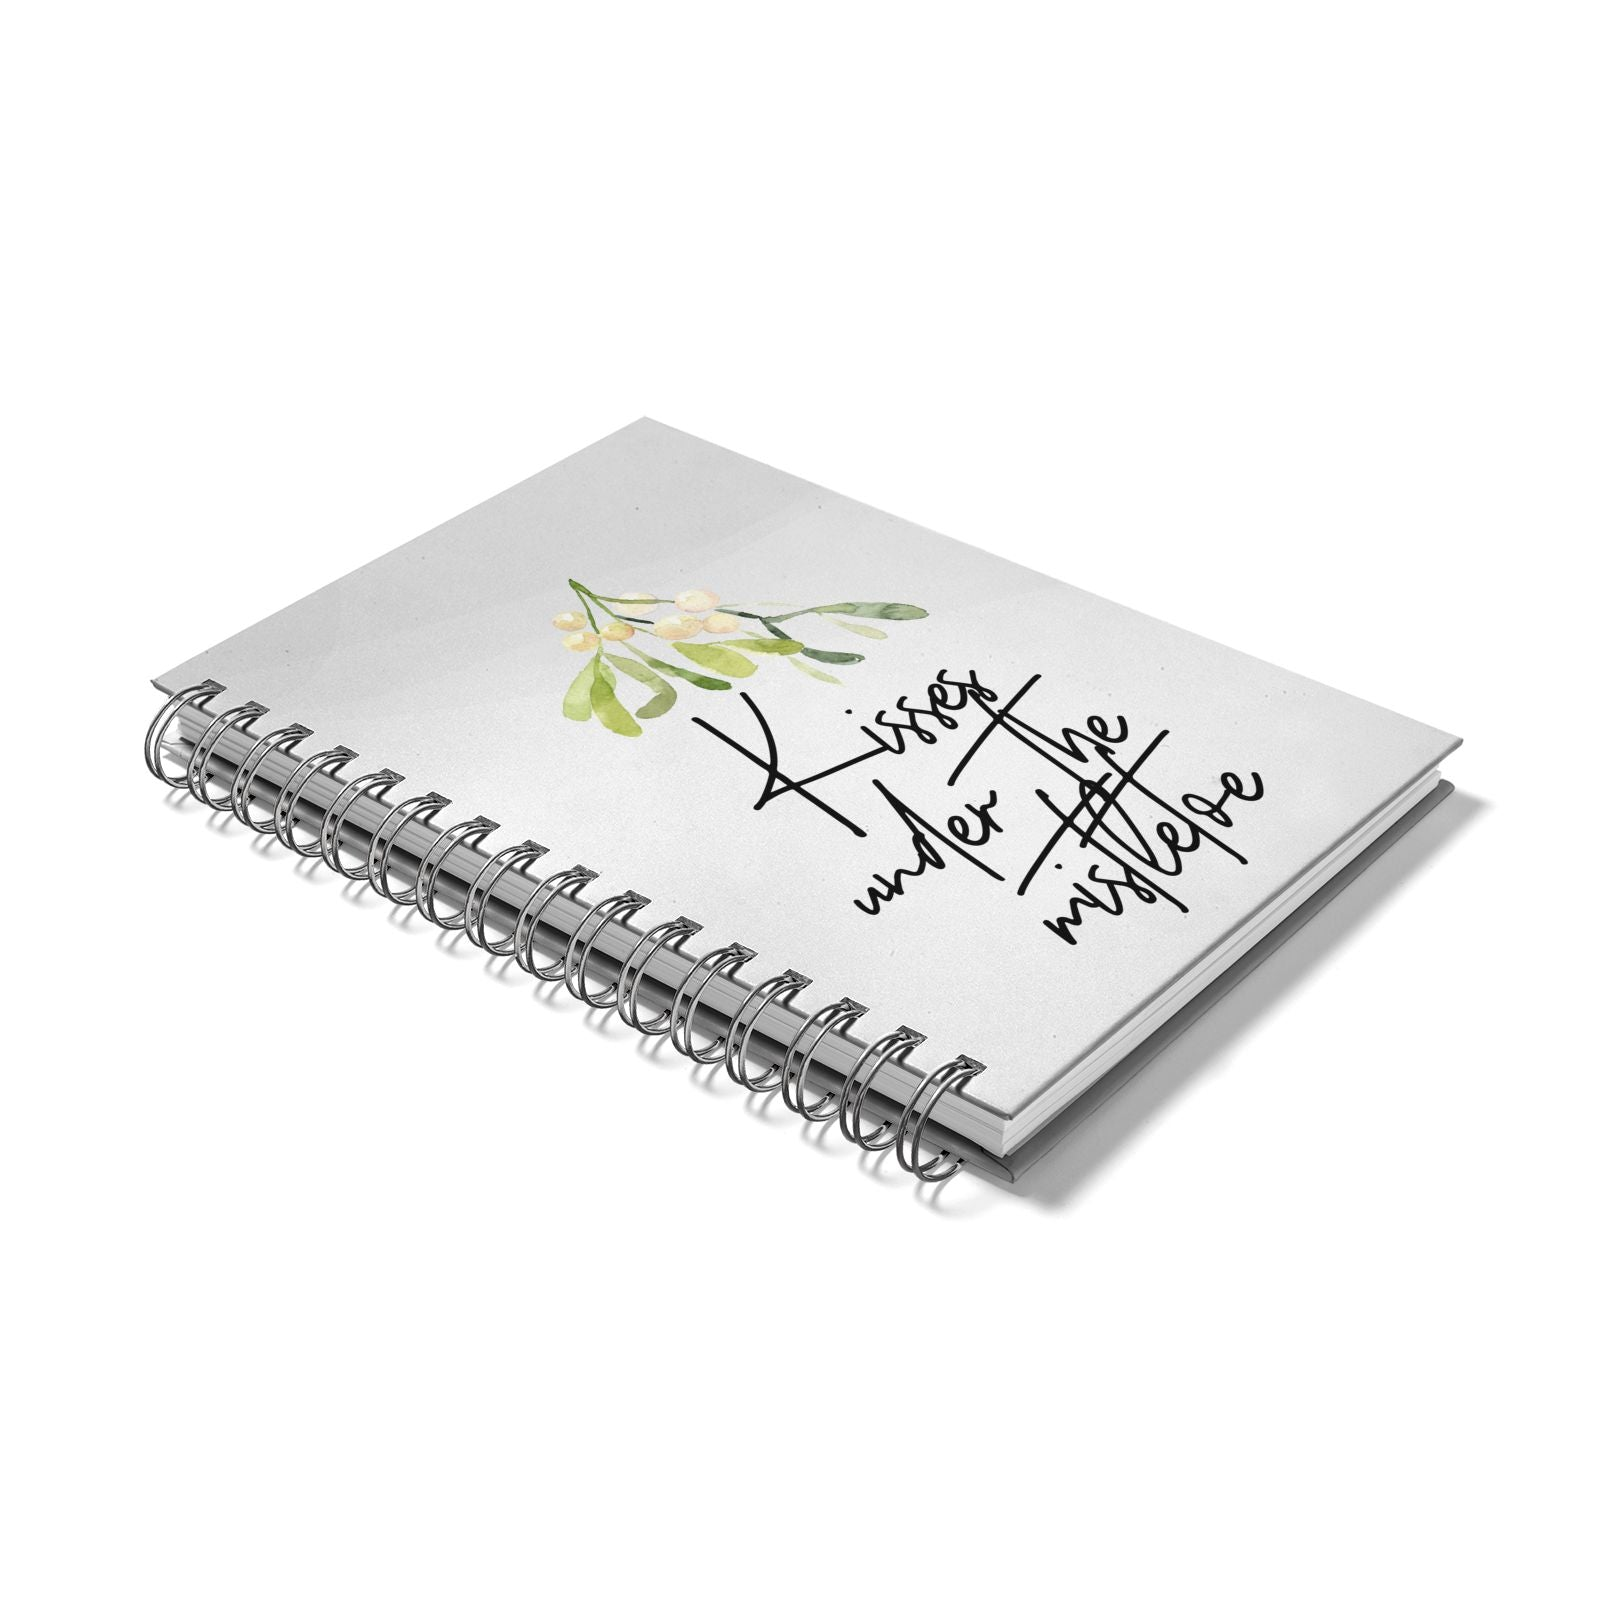 Kisses Under The Mistletoe Notebook with Silver Coil Laid Flat